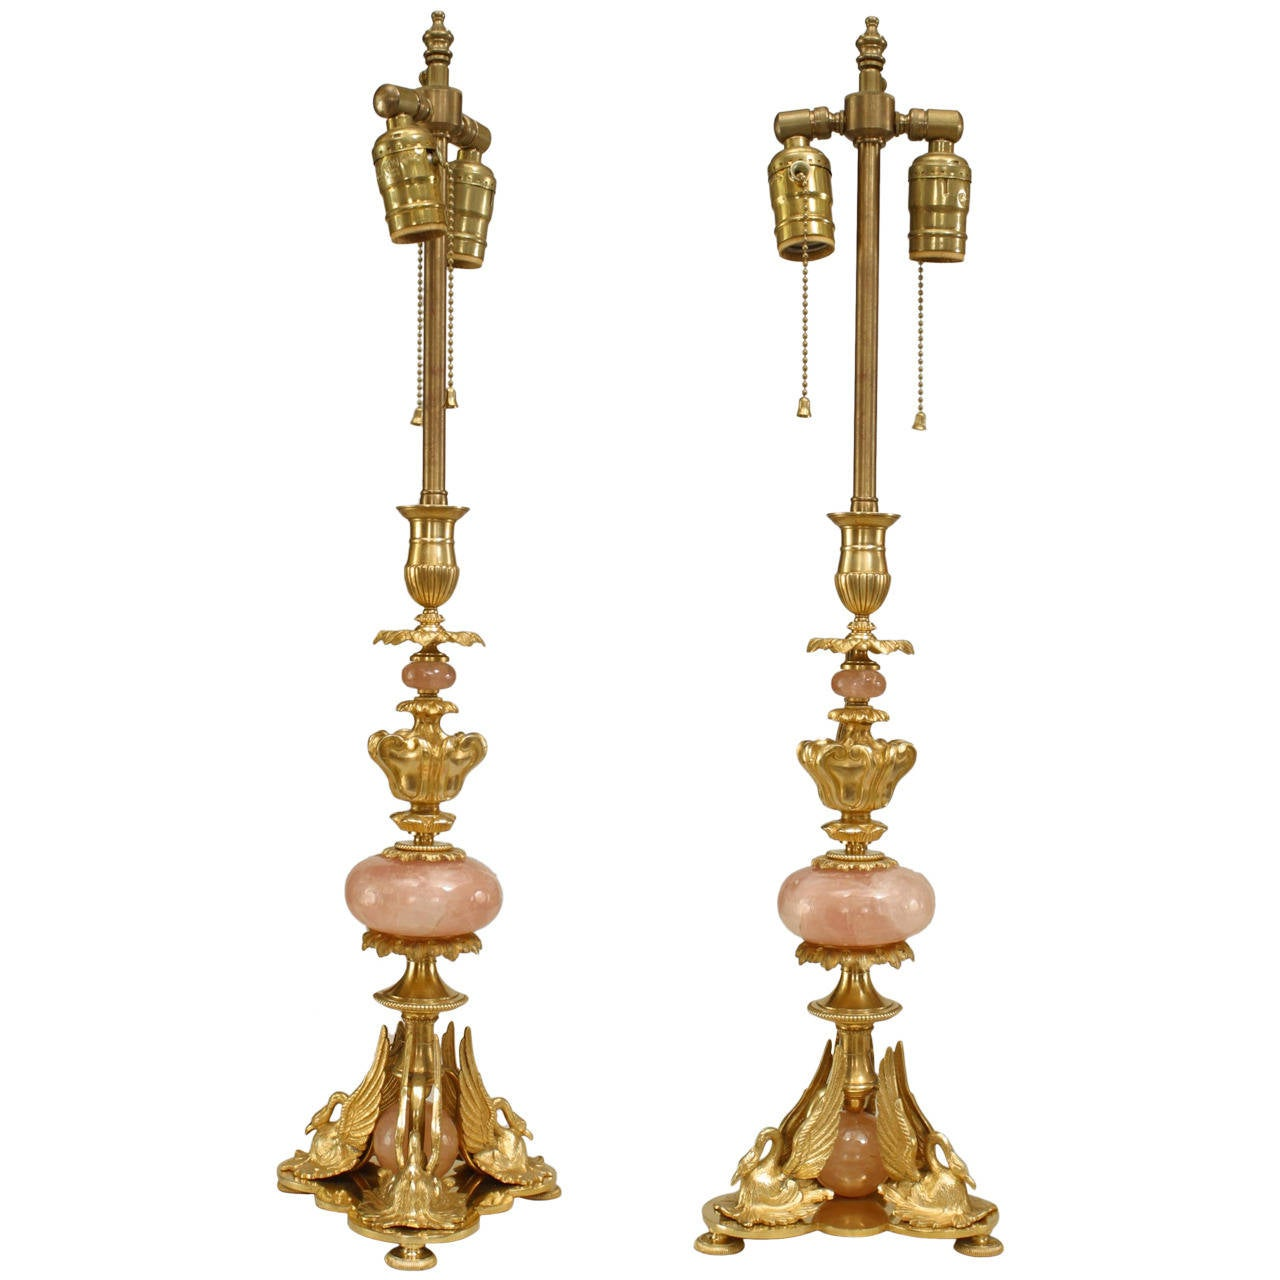 Pair of 1940's French Empire Style Gilt Bronze & Rose Quartz Table Lamps